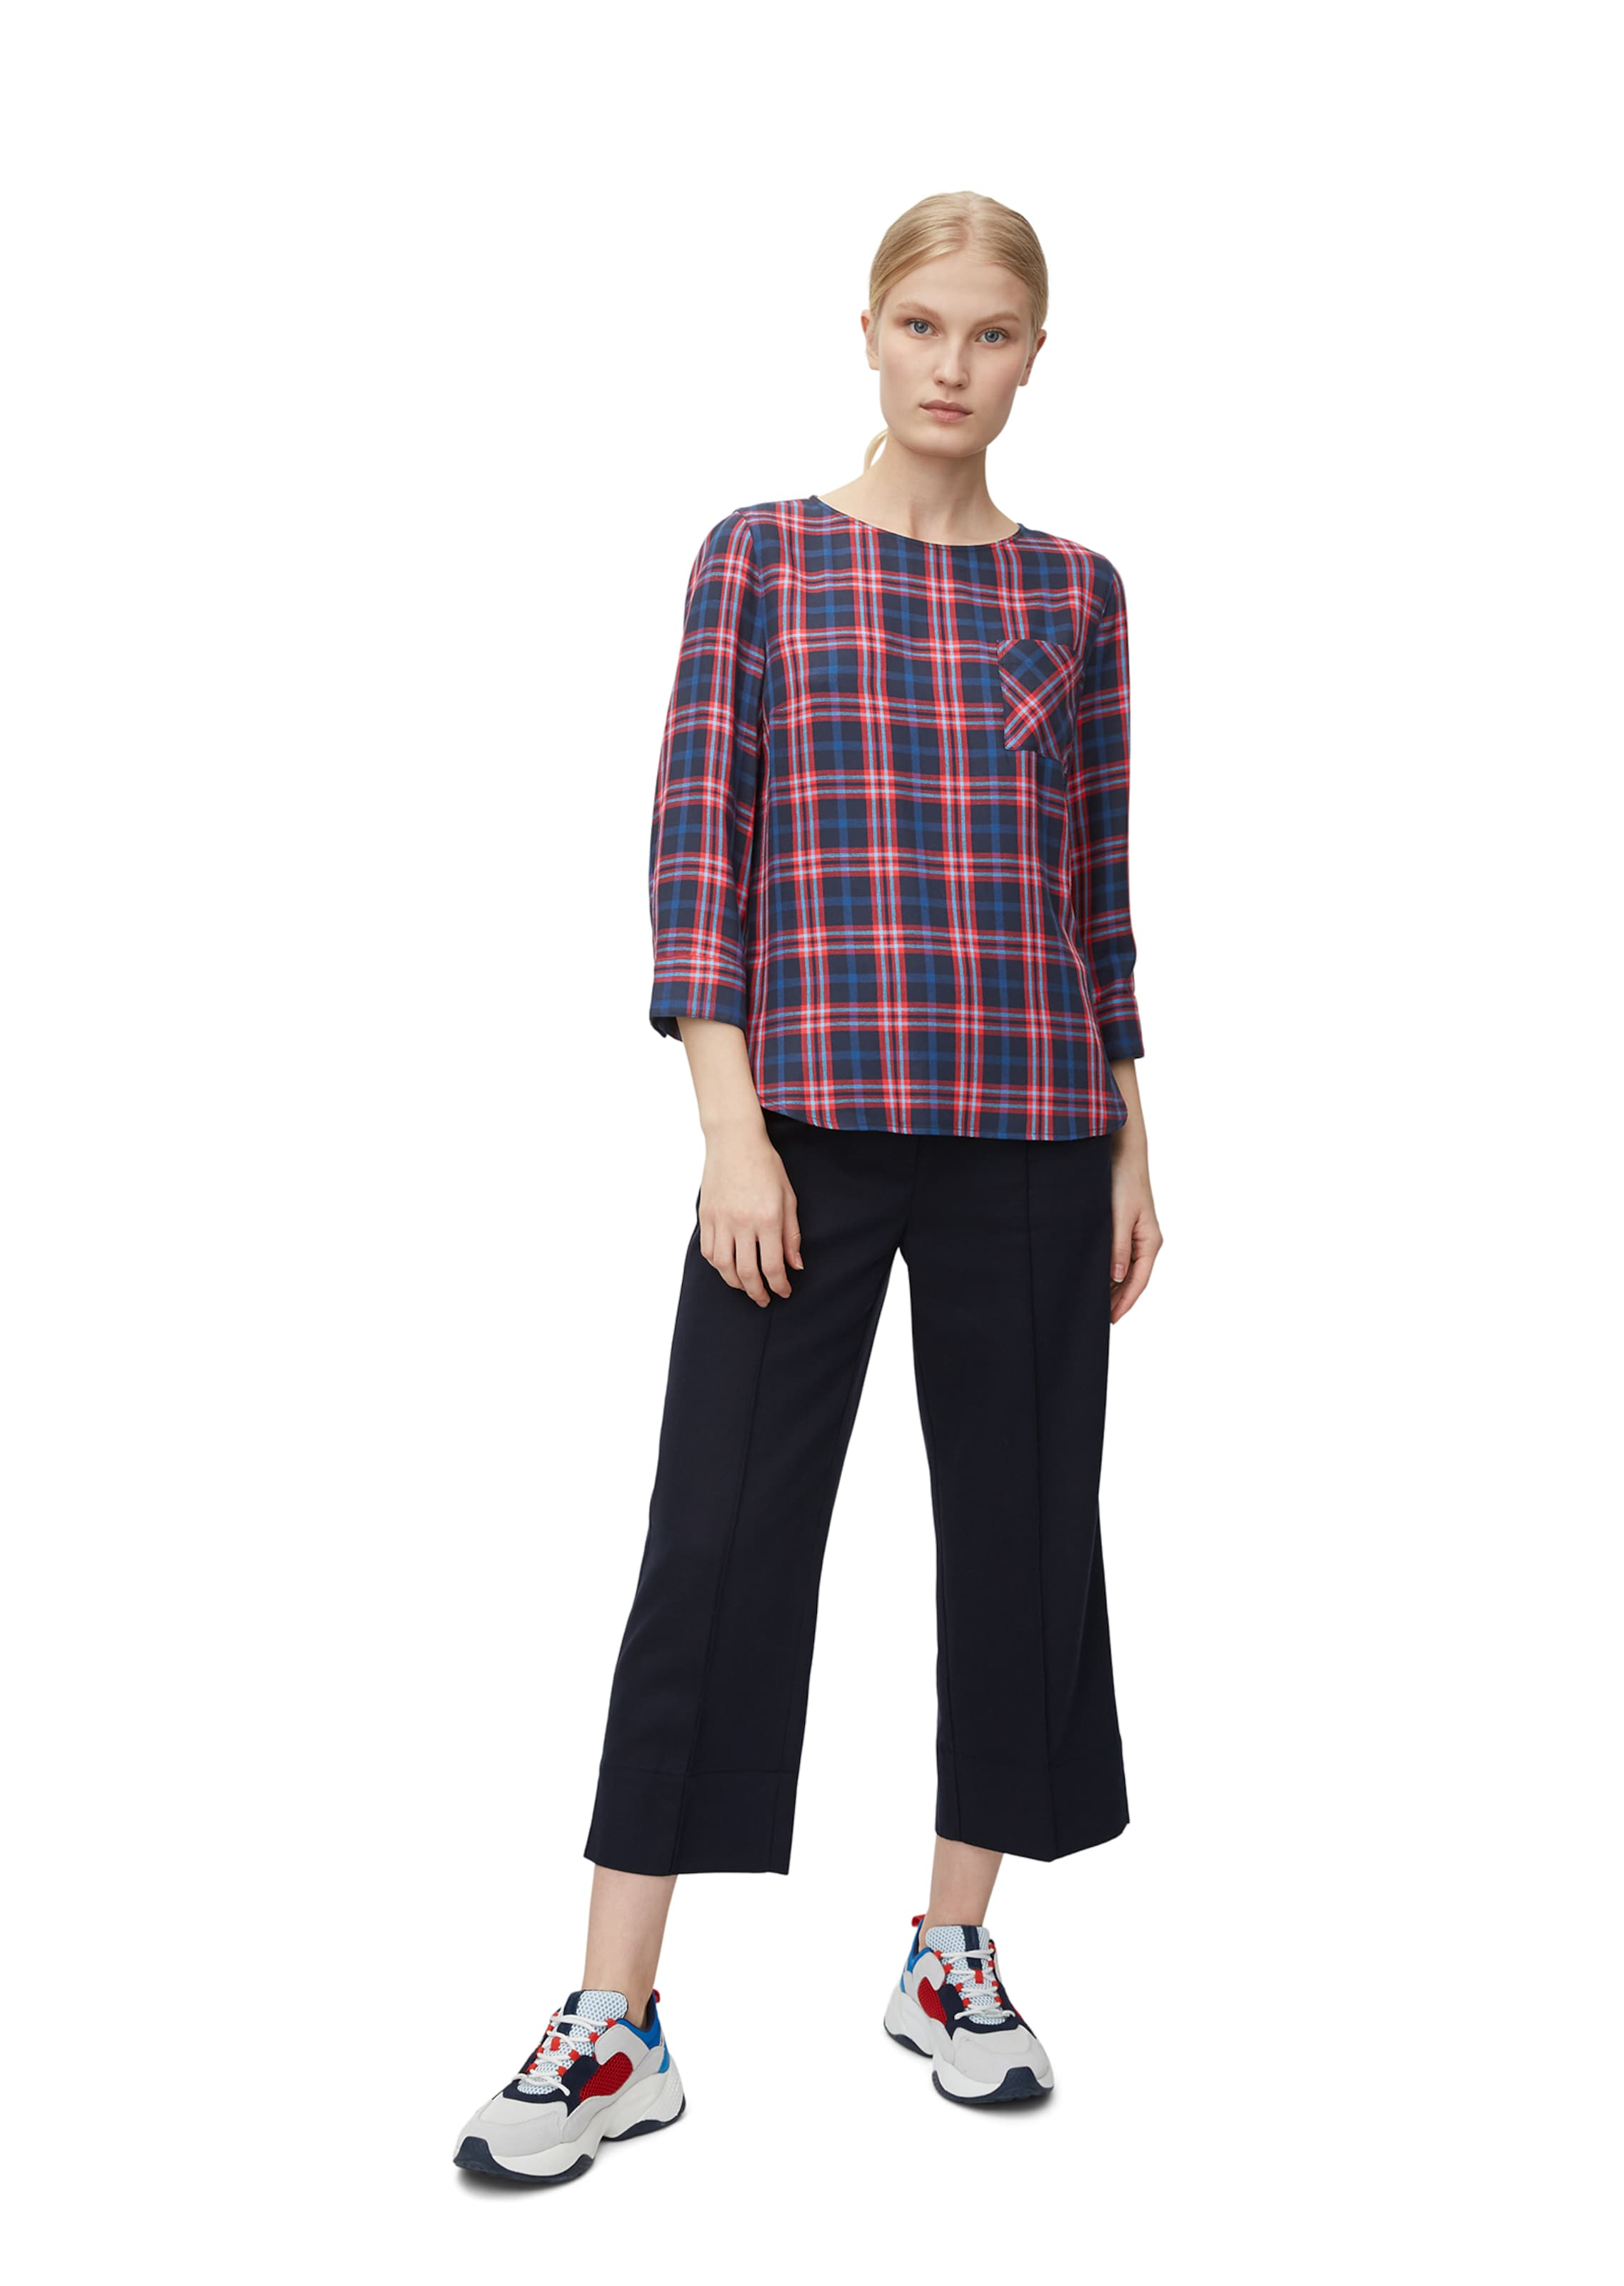 O'polo Feminine Bluse BlauRot Marc In UMSqzVpG